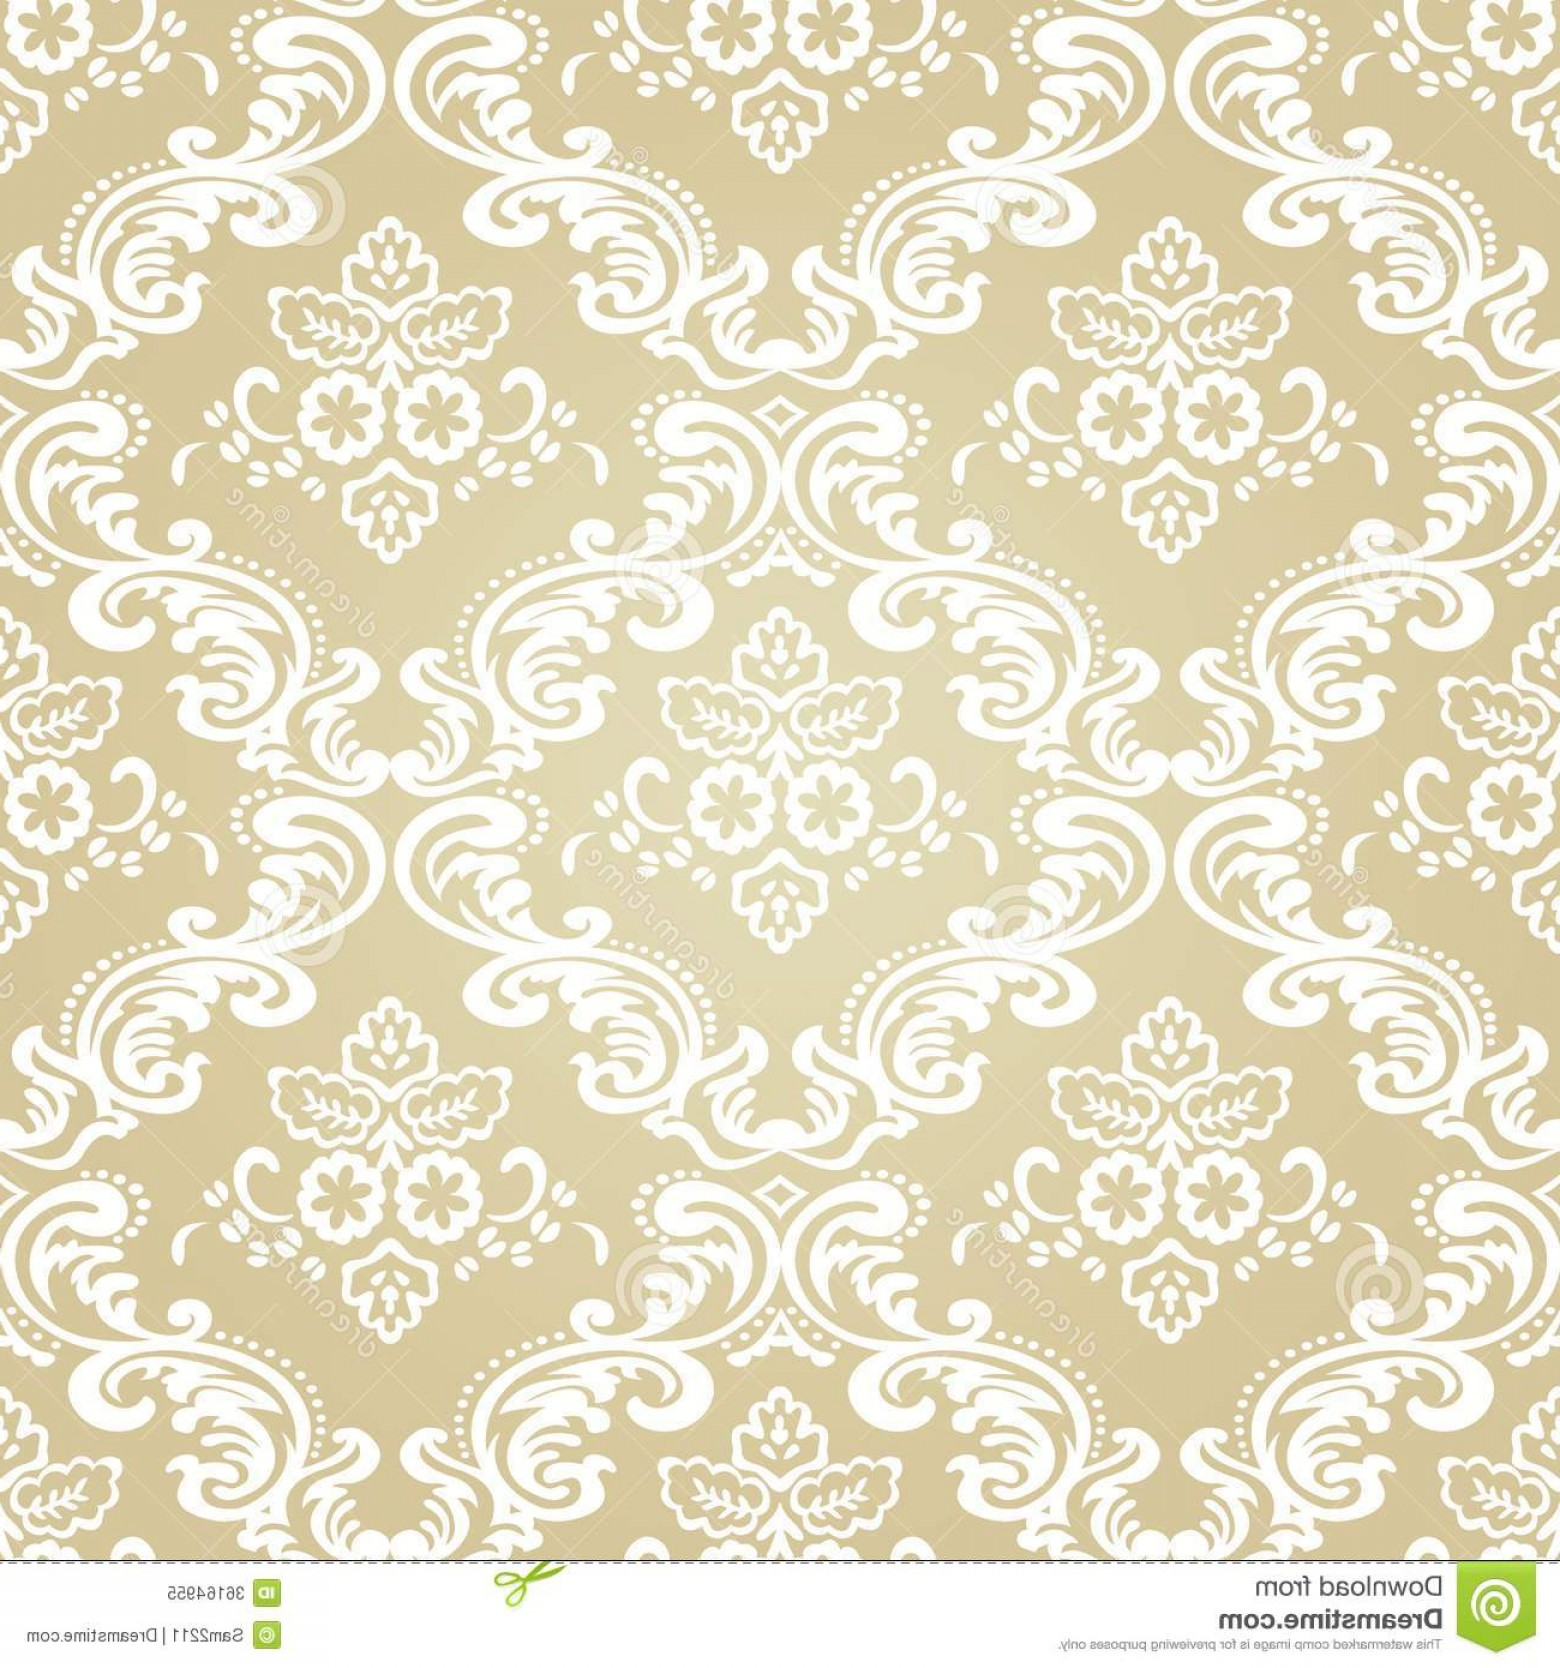 Damask Background Vector Art: Royalty Free Stock Photo Damask Vintage Floral Seamless Pattern Background Vector Illustration Image